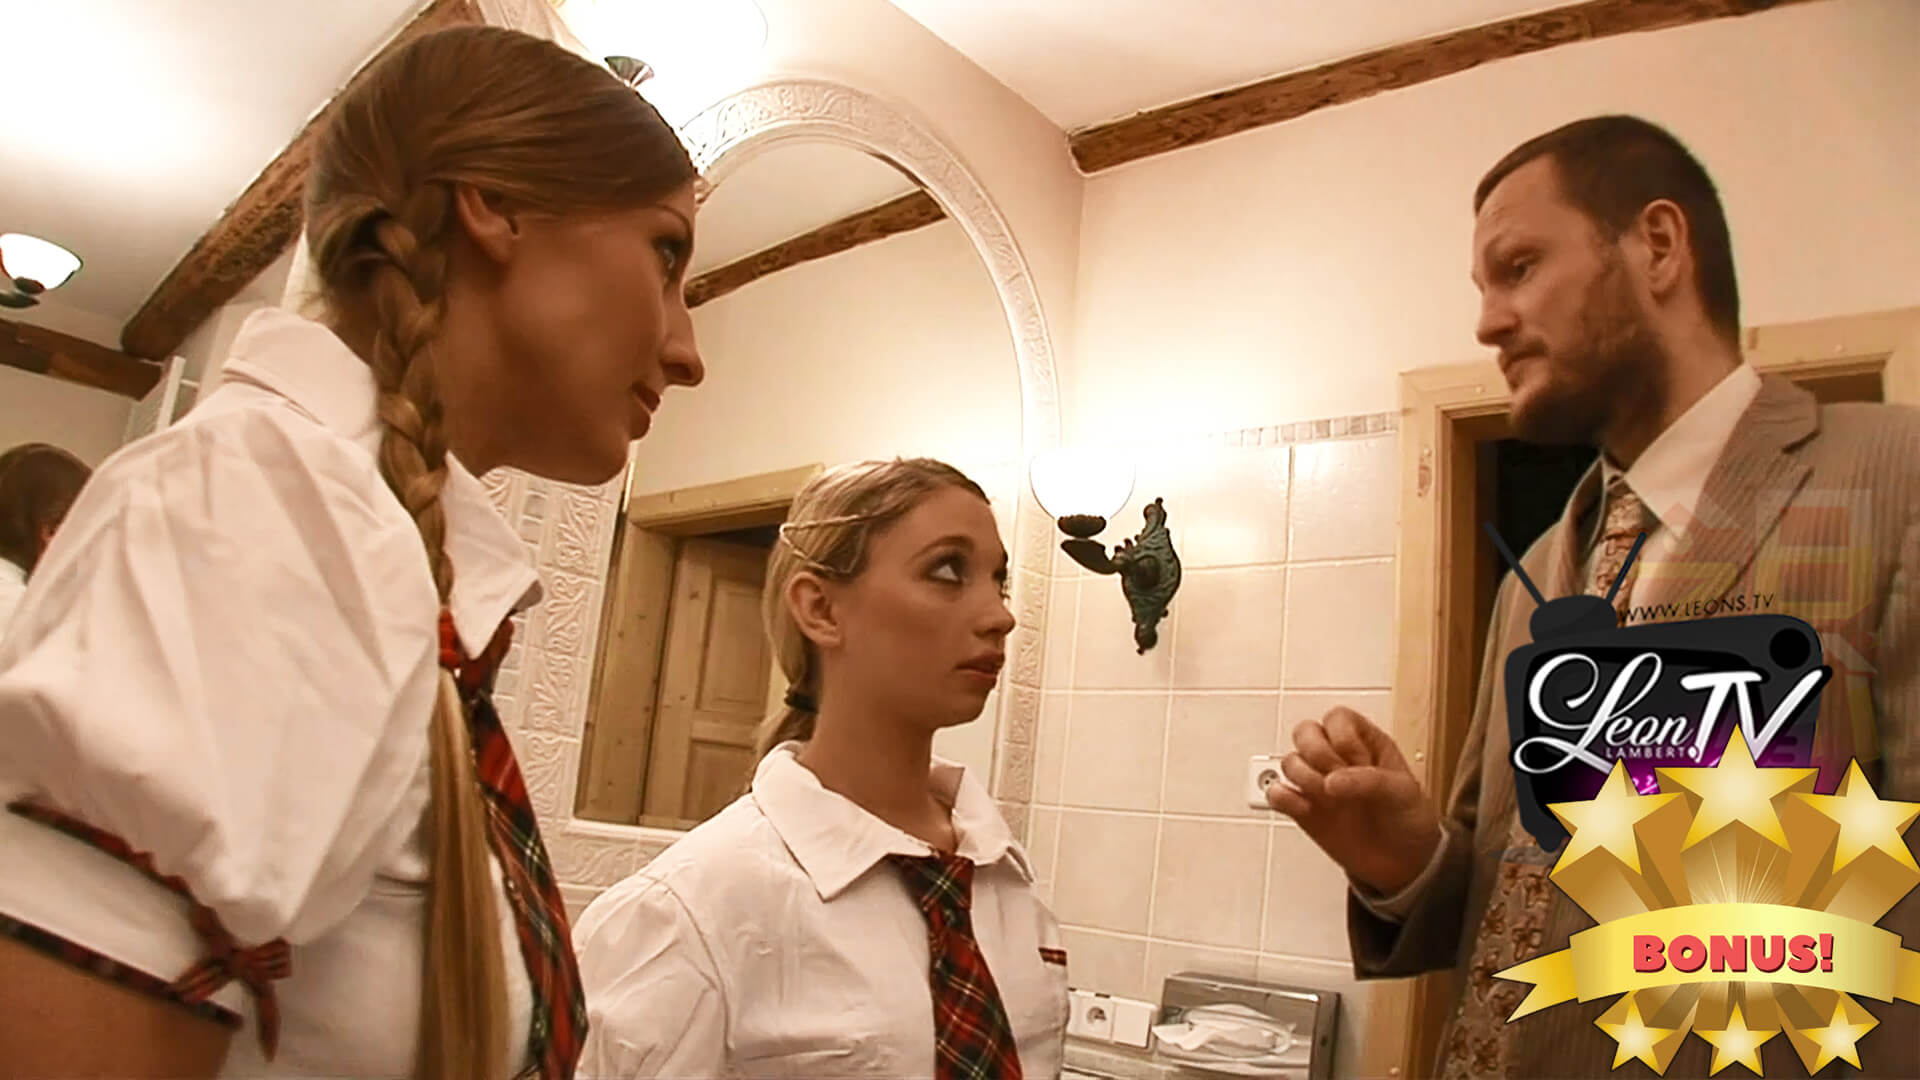 Two Young Hot Private Schoolgirls and a Huge Dick Principle.. What may go wrong?